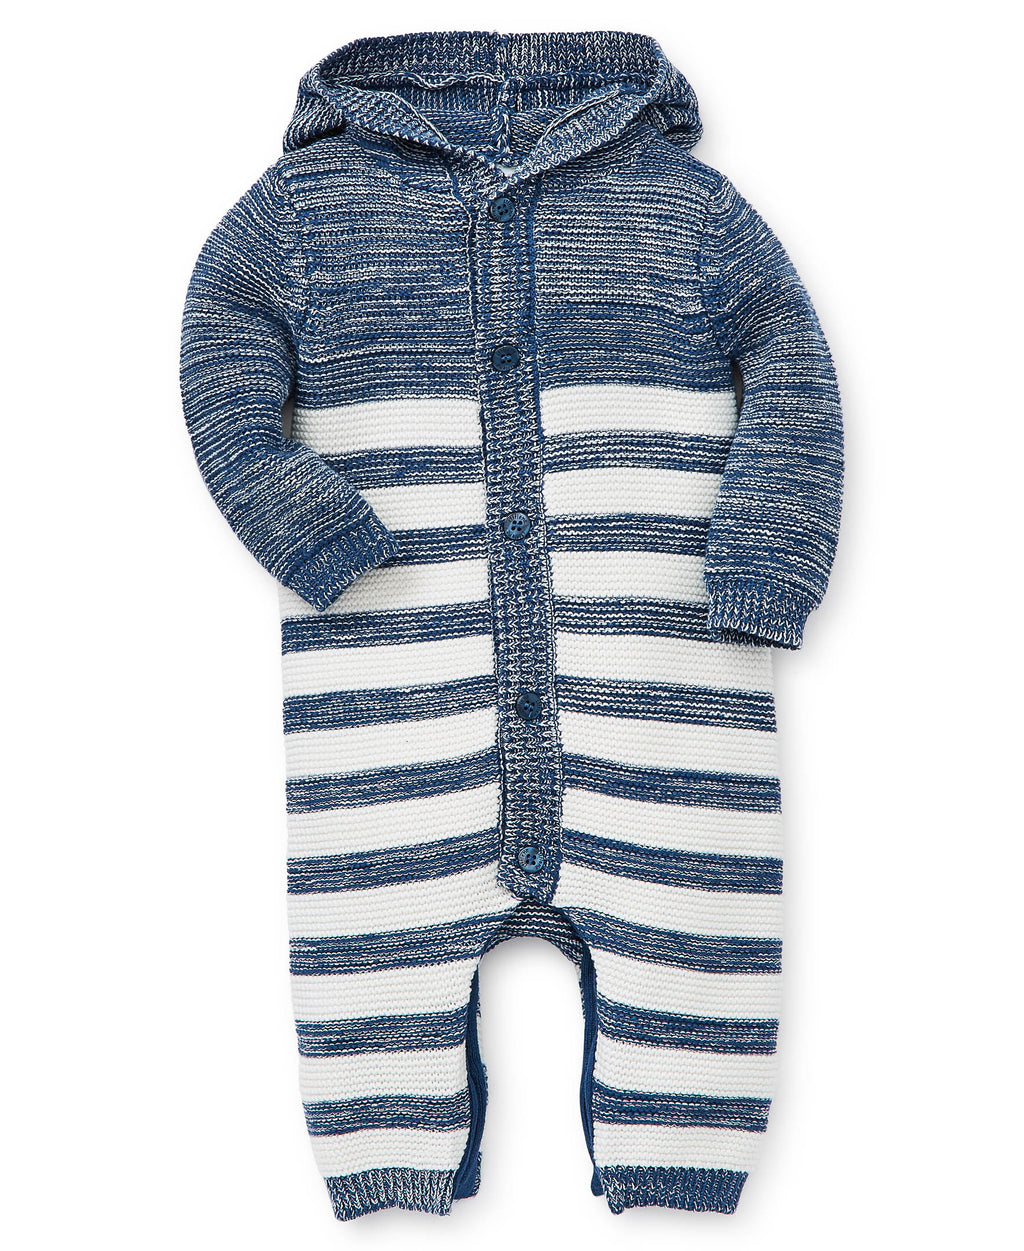 Blue Striped Sweater One-Piece